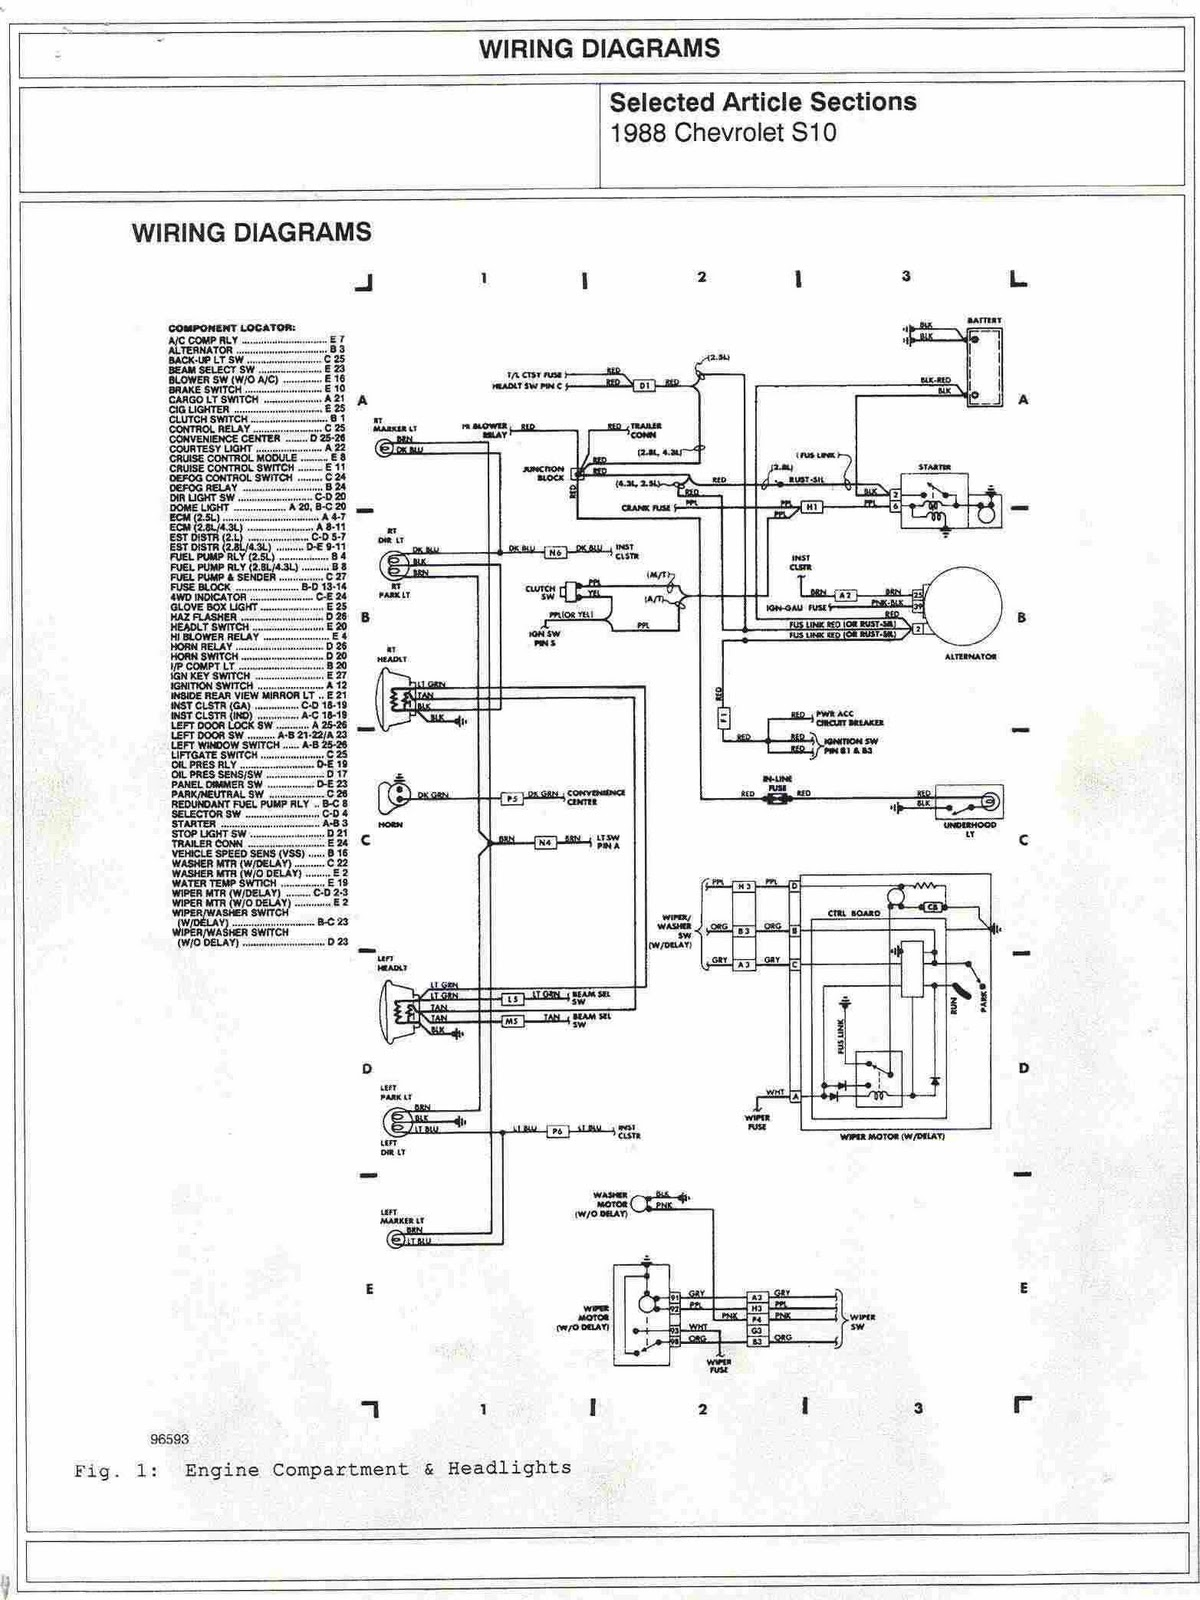 1988+Chevrolet+S10+Engine+Compartment+and+Headlights+Wiring+Diagrams 95 s10 wiring diagram 95 tahoe wiring diagram \u2022 wiring diagrams 1995 Chevrolet Suburban Interior at eliteediting.co